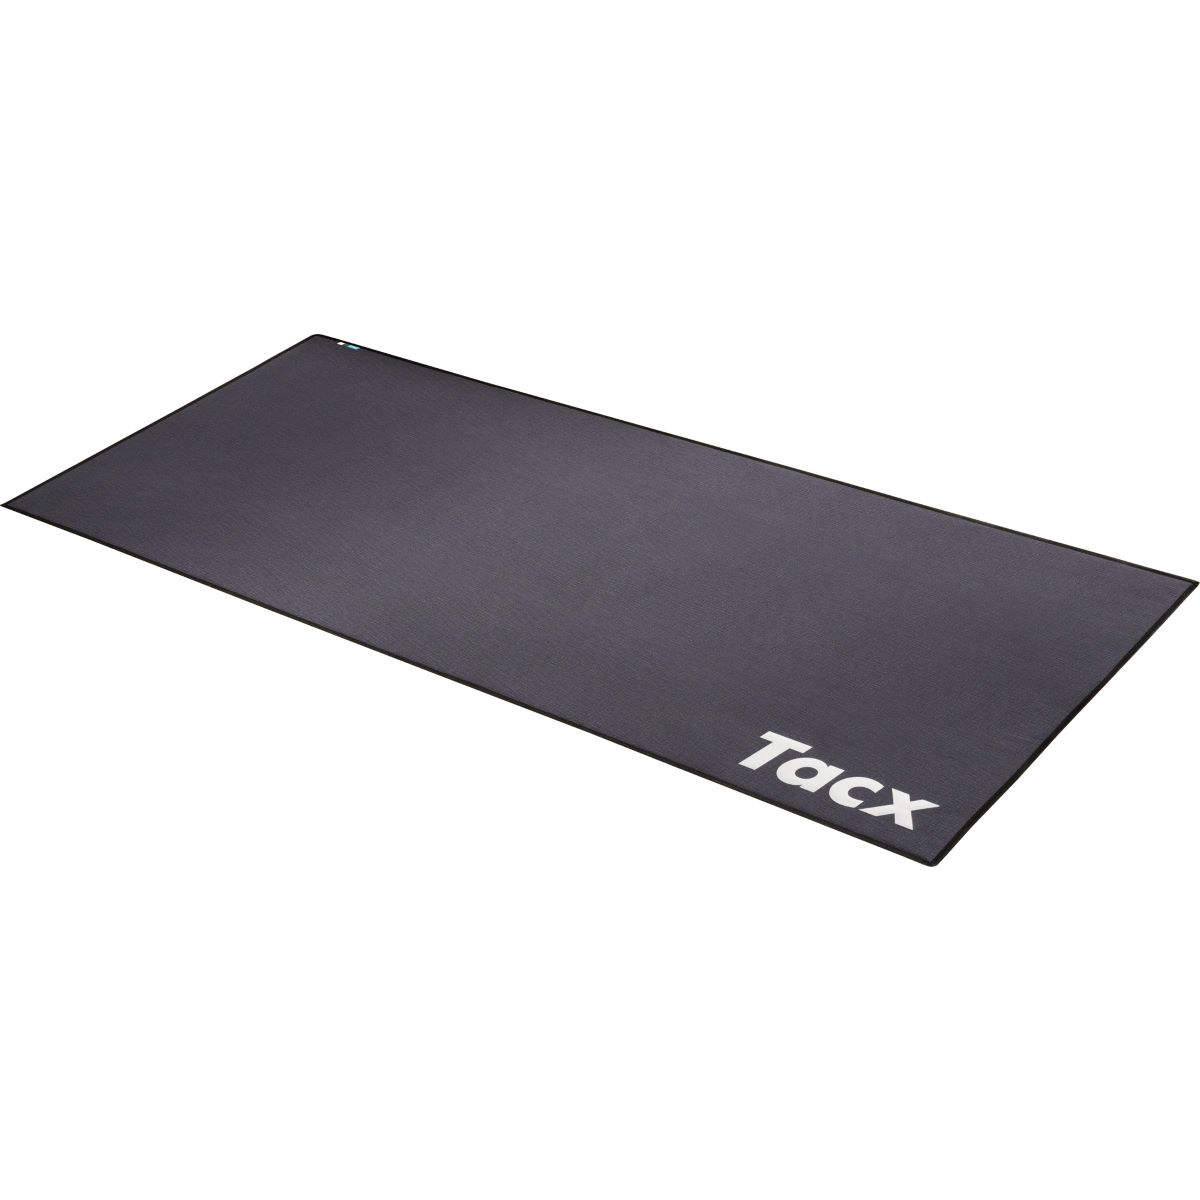 Tacx Trainer Mat (Foldable)   Turbo Trainer Spares